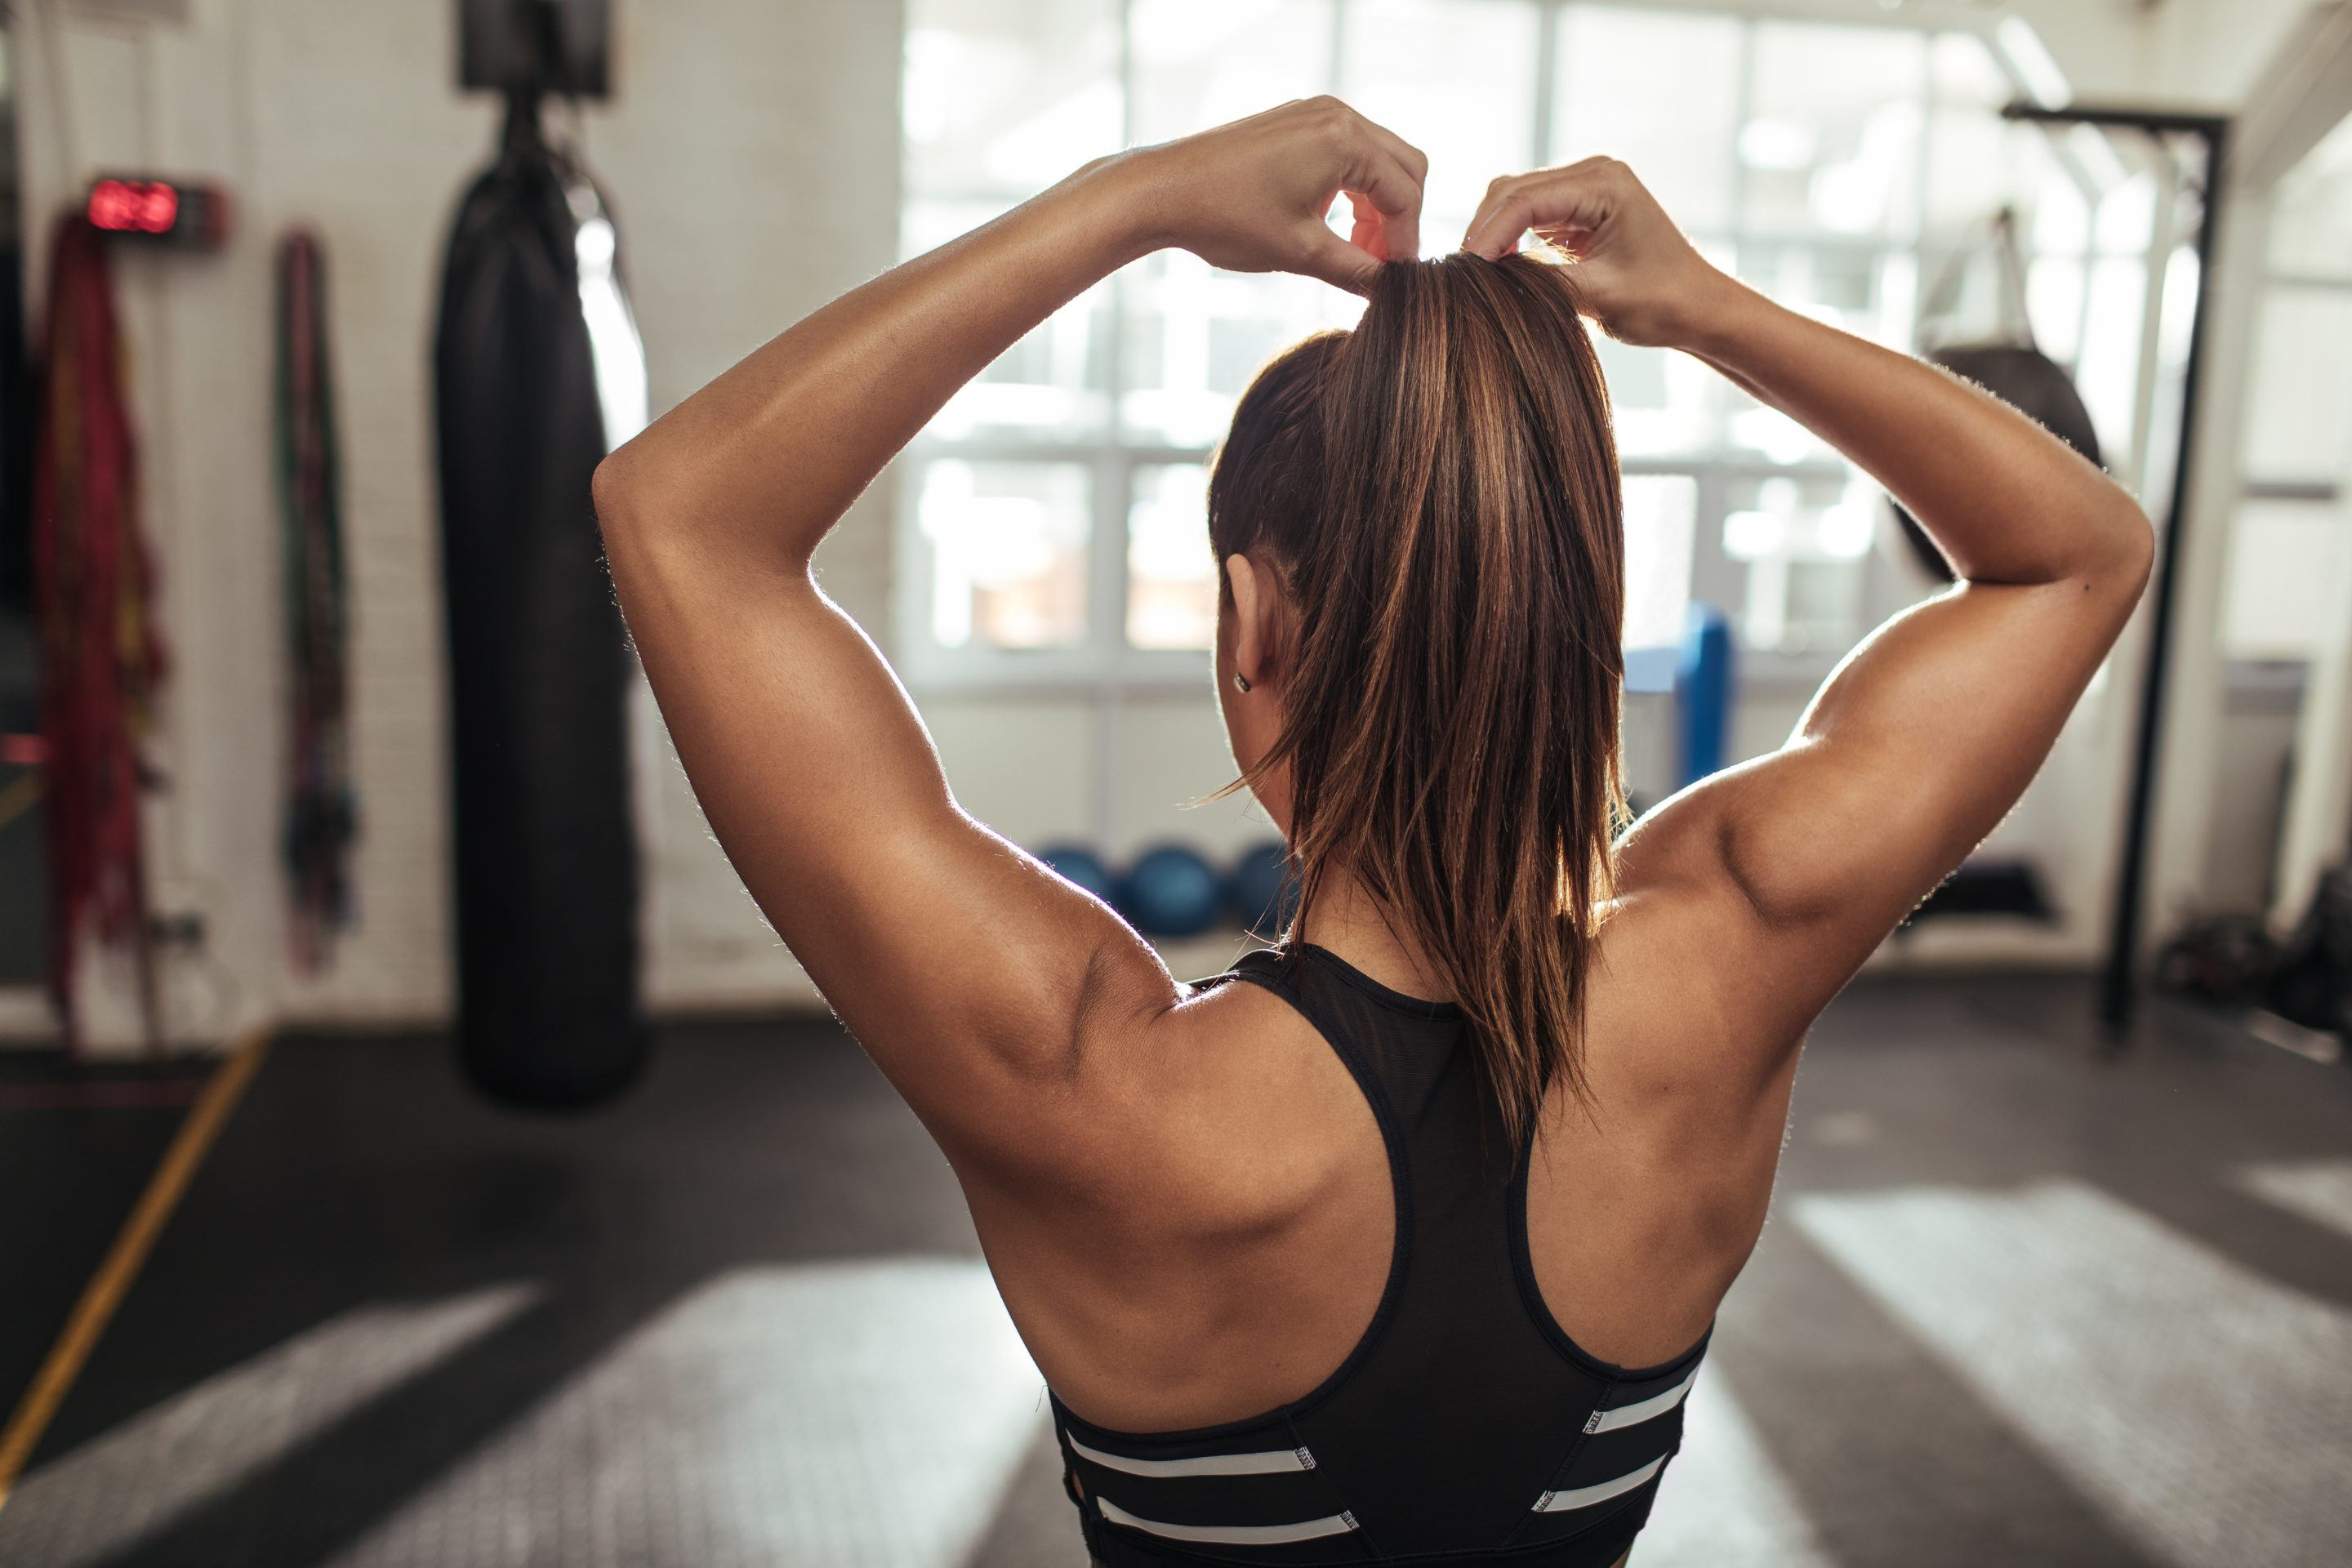 The triceps-busting move that will light your entire arm on fire